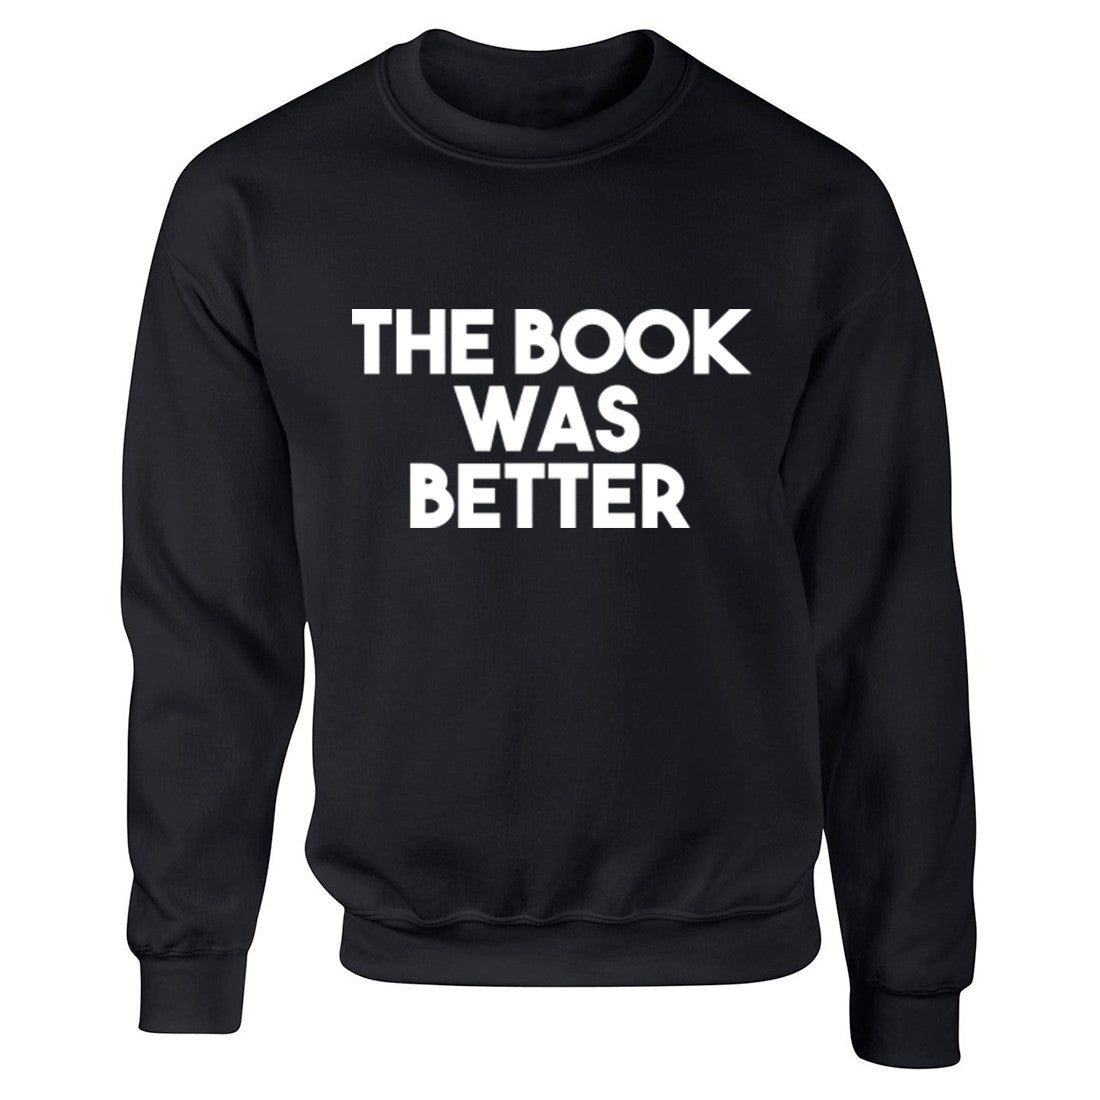 The Book Was Better Unisex Jumper K0468 - Illustrated Identity Ltd.